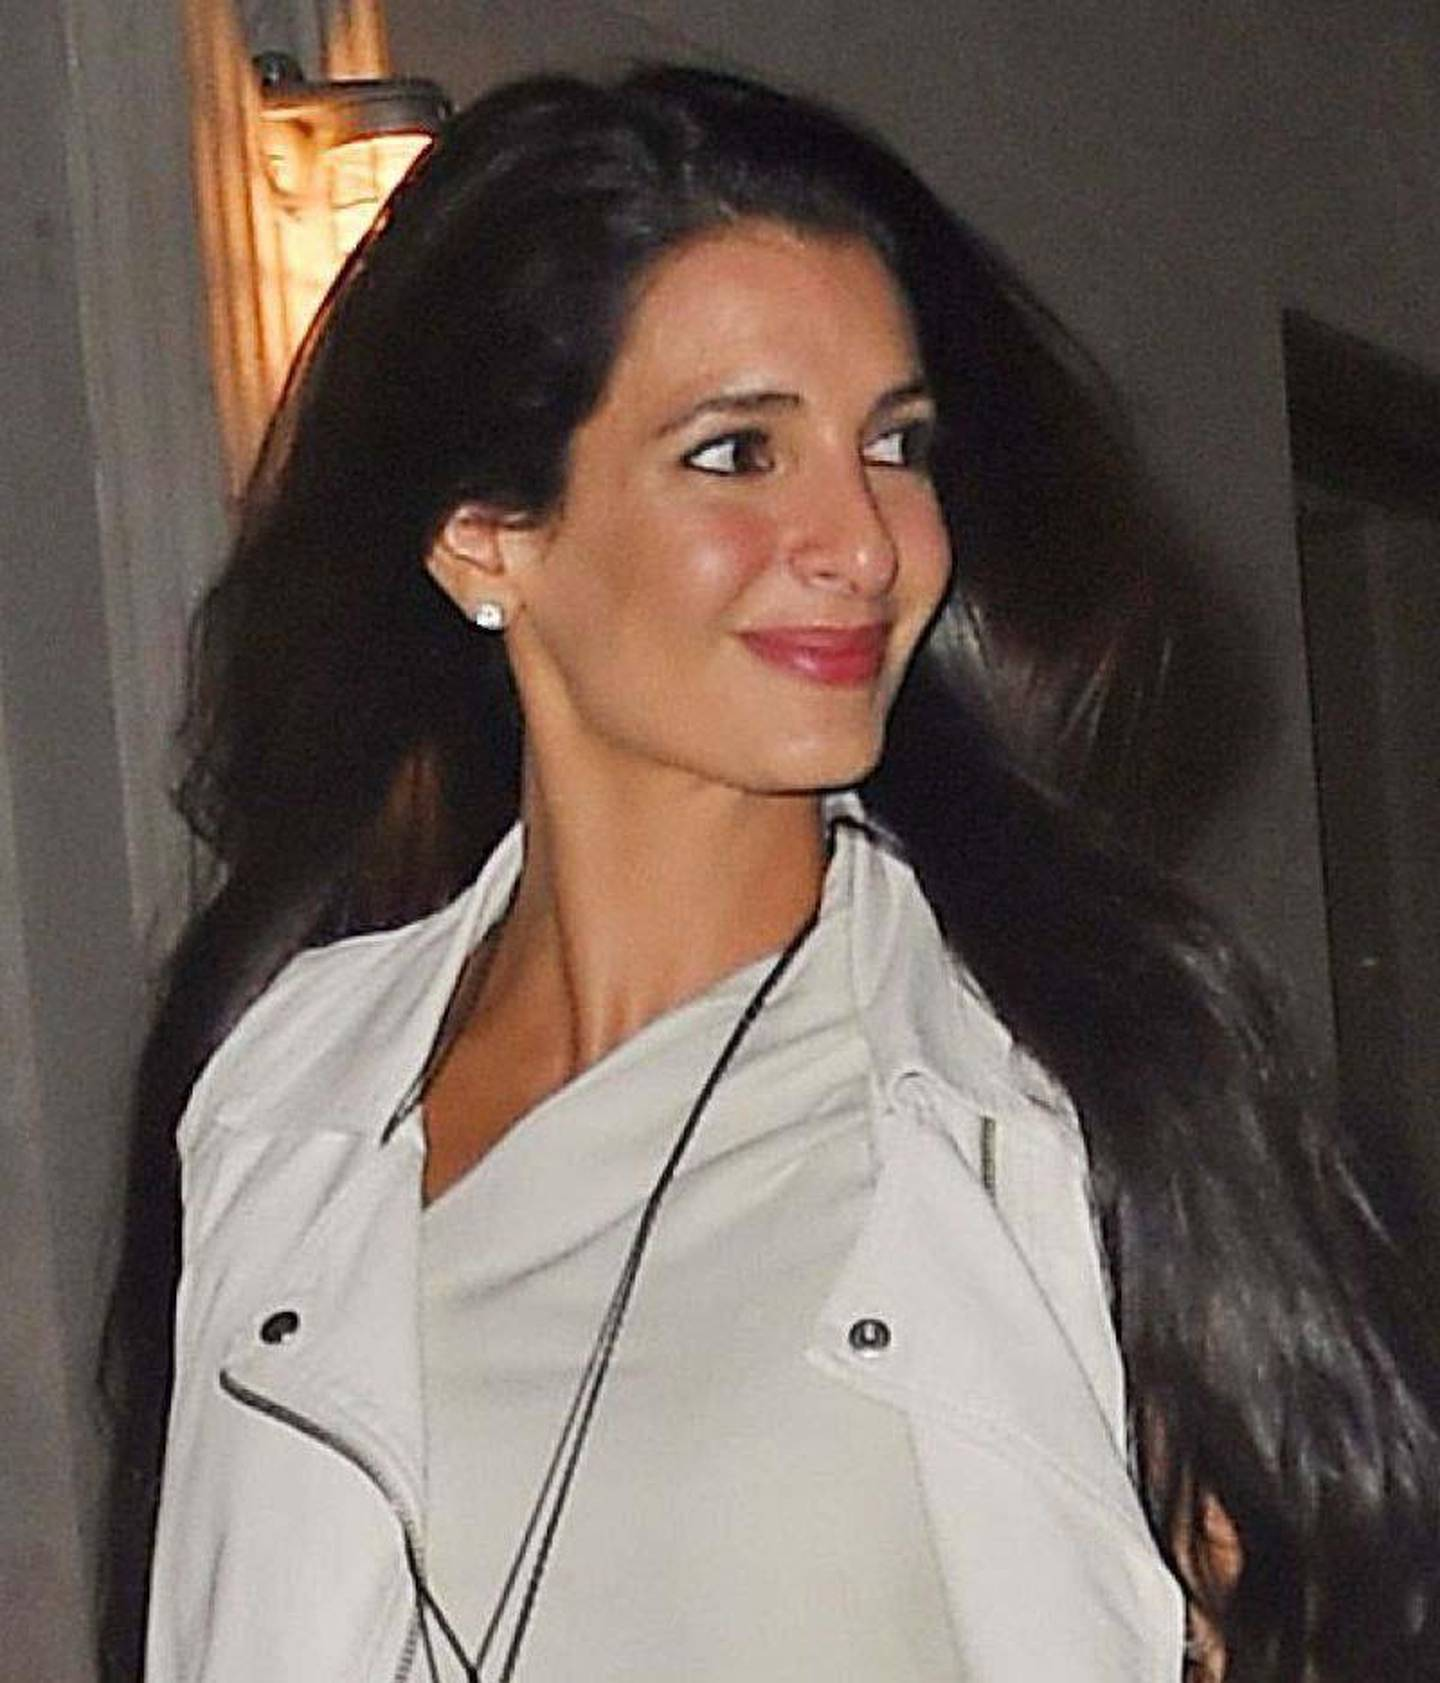 Mandatory Credit: Photo by Buzz Foto/Shutterstock (4725106r)Tala AlamuddinGeorge Clooney and Amal Clooney out and about, New York, America - 28 Apr 2015George Clooney, Amal Clooney and Amal's parants and sister Tala Alamuddin get dinner at Caravaggio in the Upper East Side